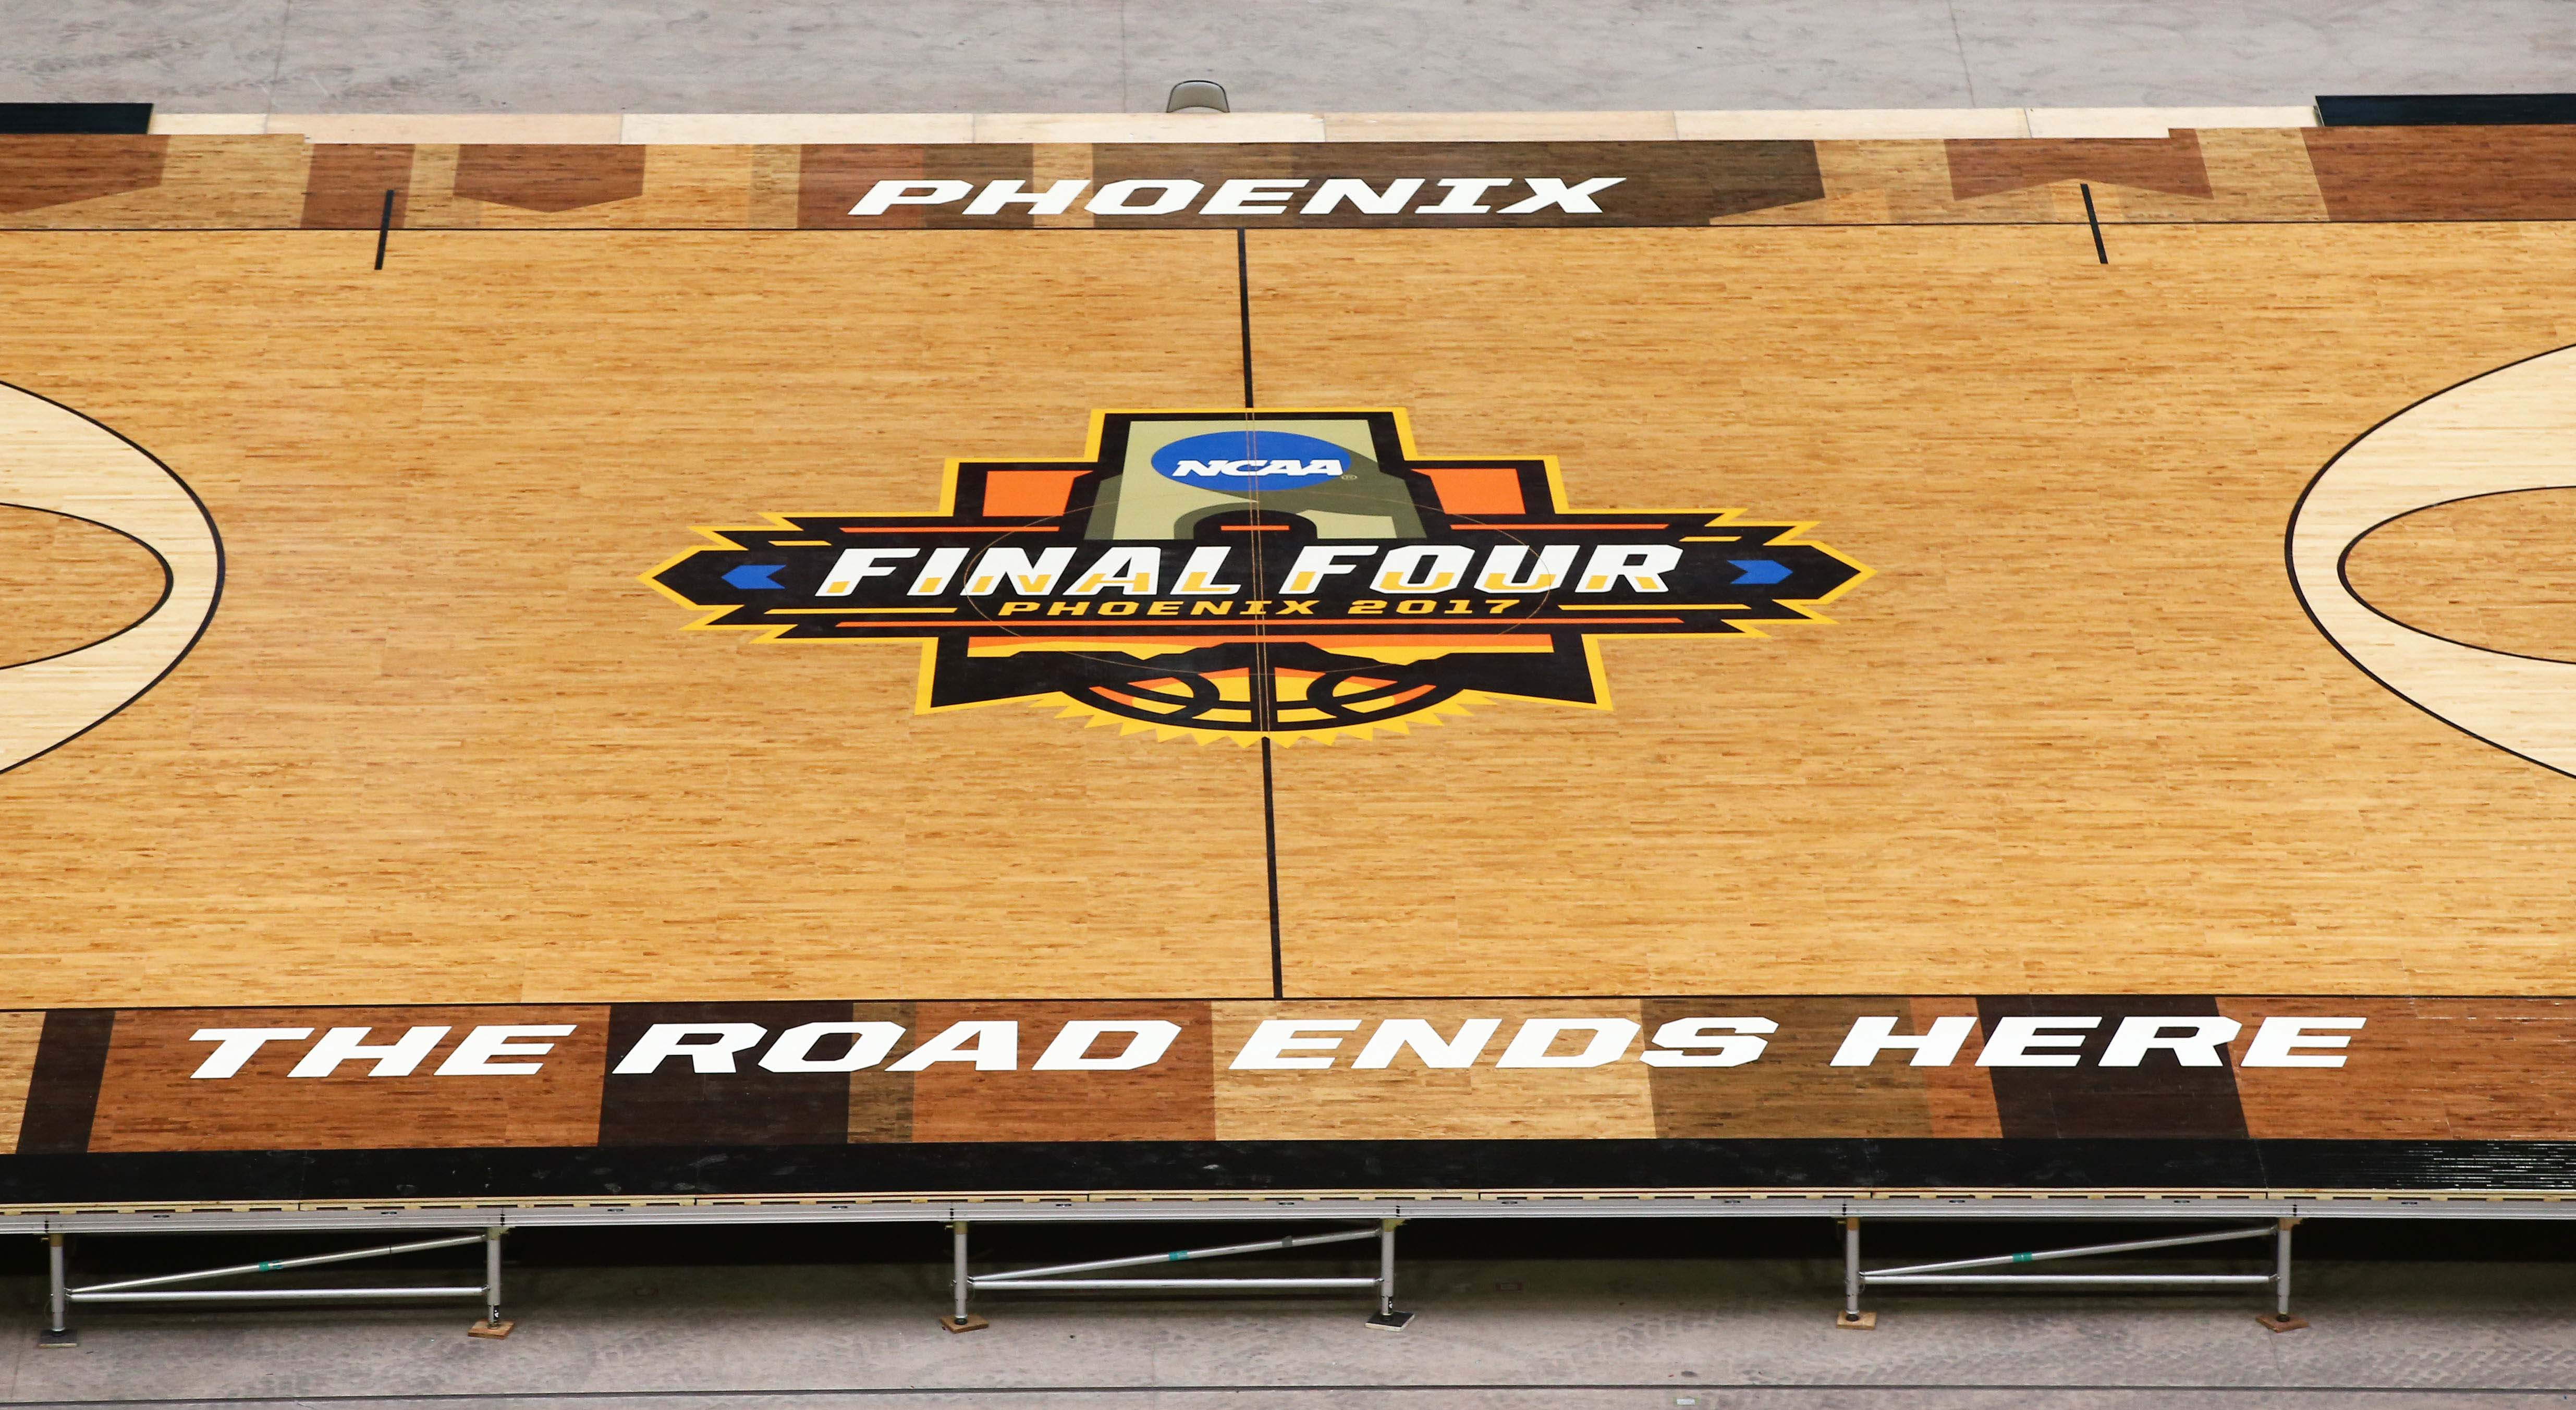 Mar 24, 2017; Glendale, AZ, USA; The basketball court for the NCAA Men's Final Four at University of Phoenix Stadium. The court is made from 397 4' x 7' panels of Northern Hard Maple, weighing approximately 188 pounds each. Mandatory Credit: Rob Schumacher/The Arizona Republic via USA TODAY NETWORK